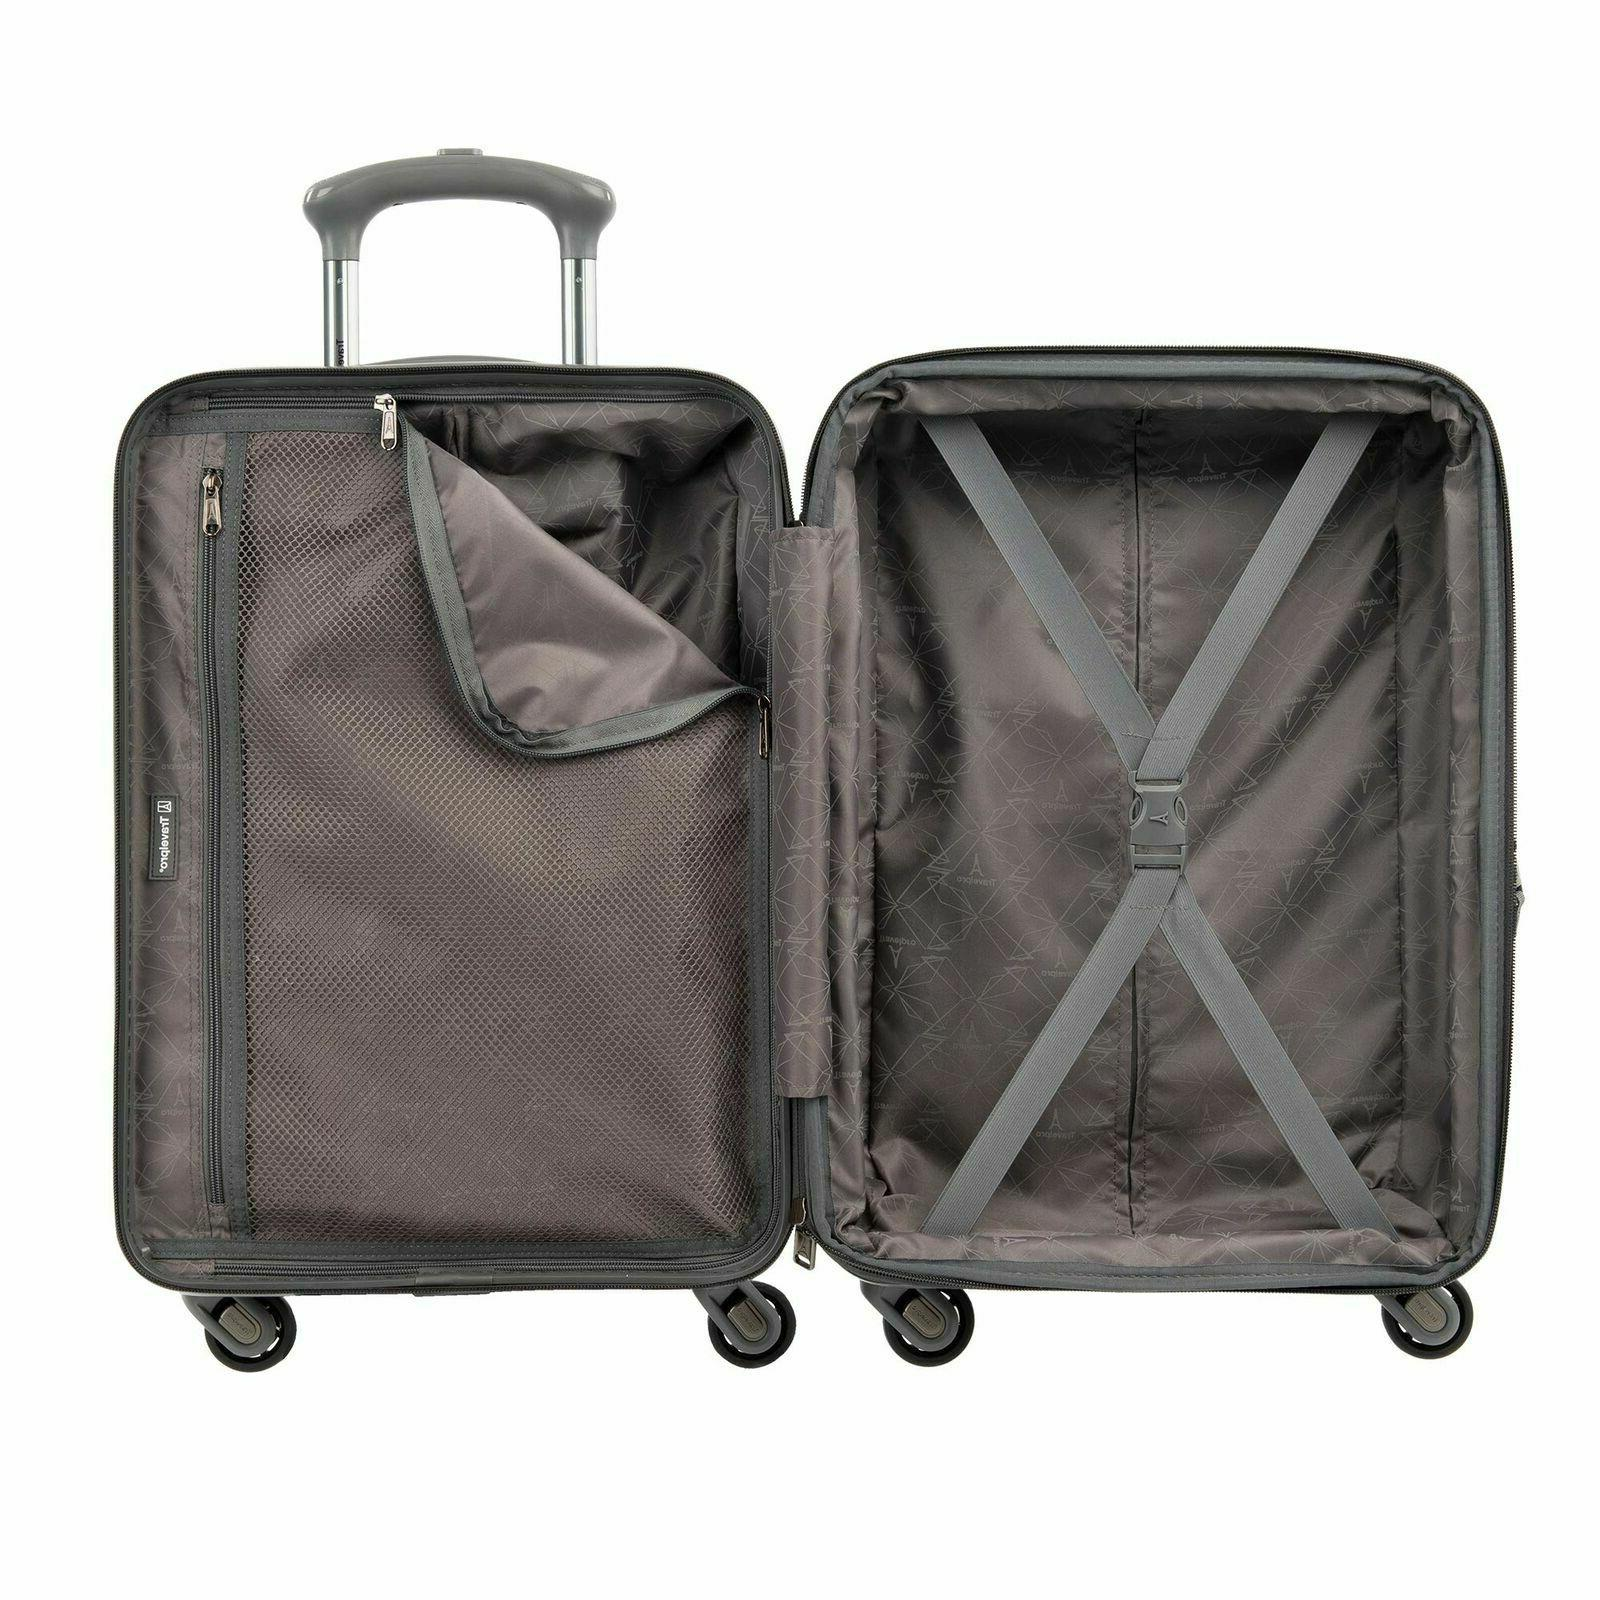 """Citadel Deluxe 20"""" and 24"""" Hardside Luggage Set by Travelpro Gun Meta..."""